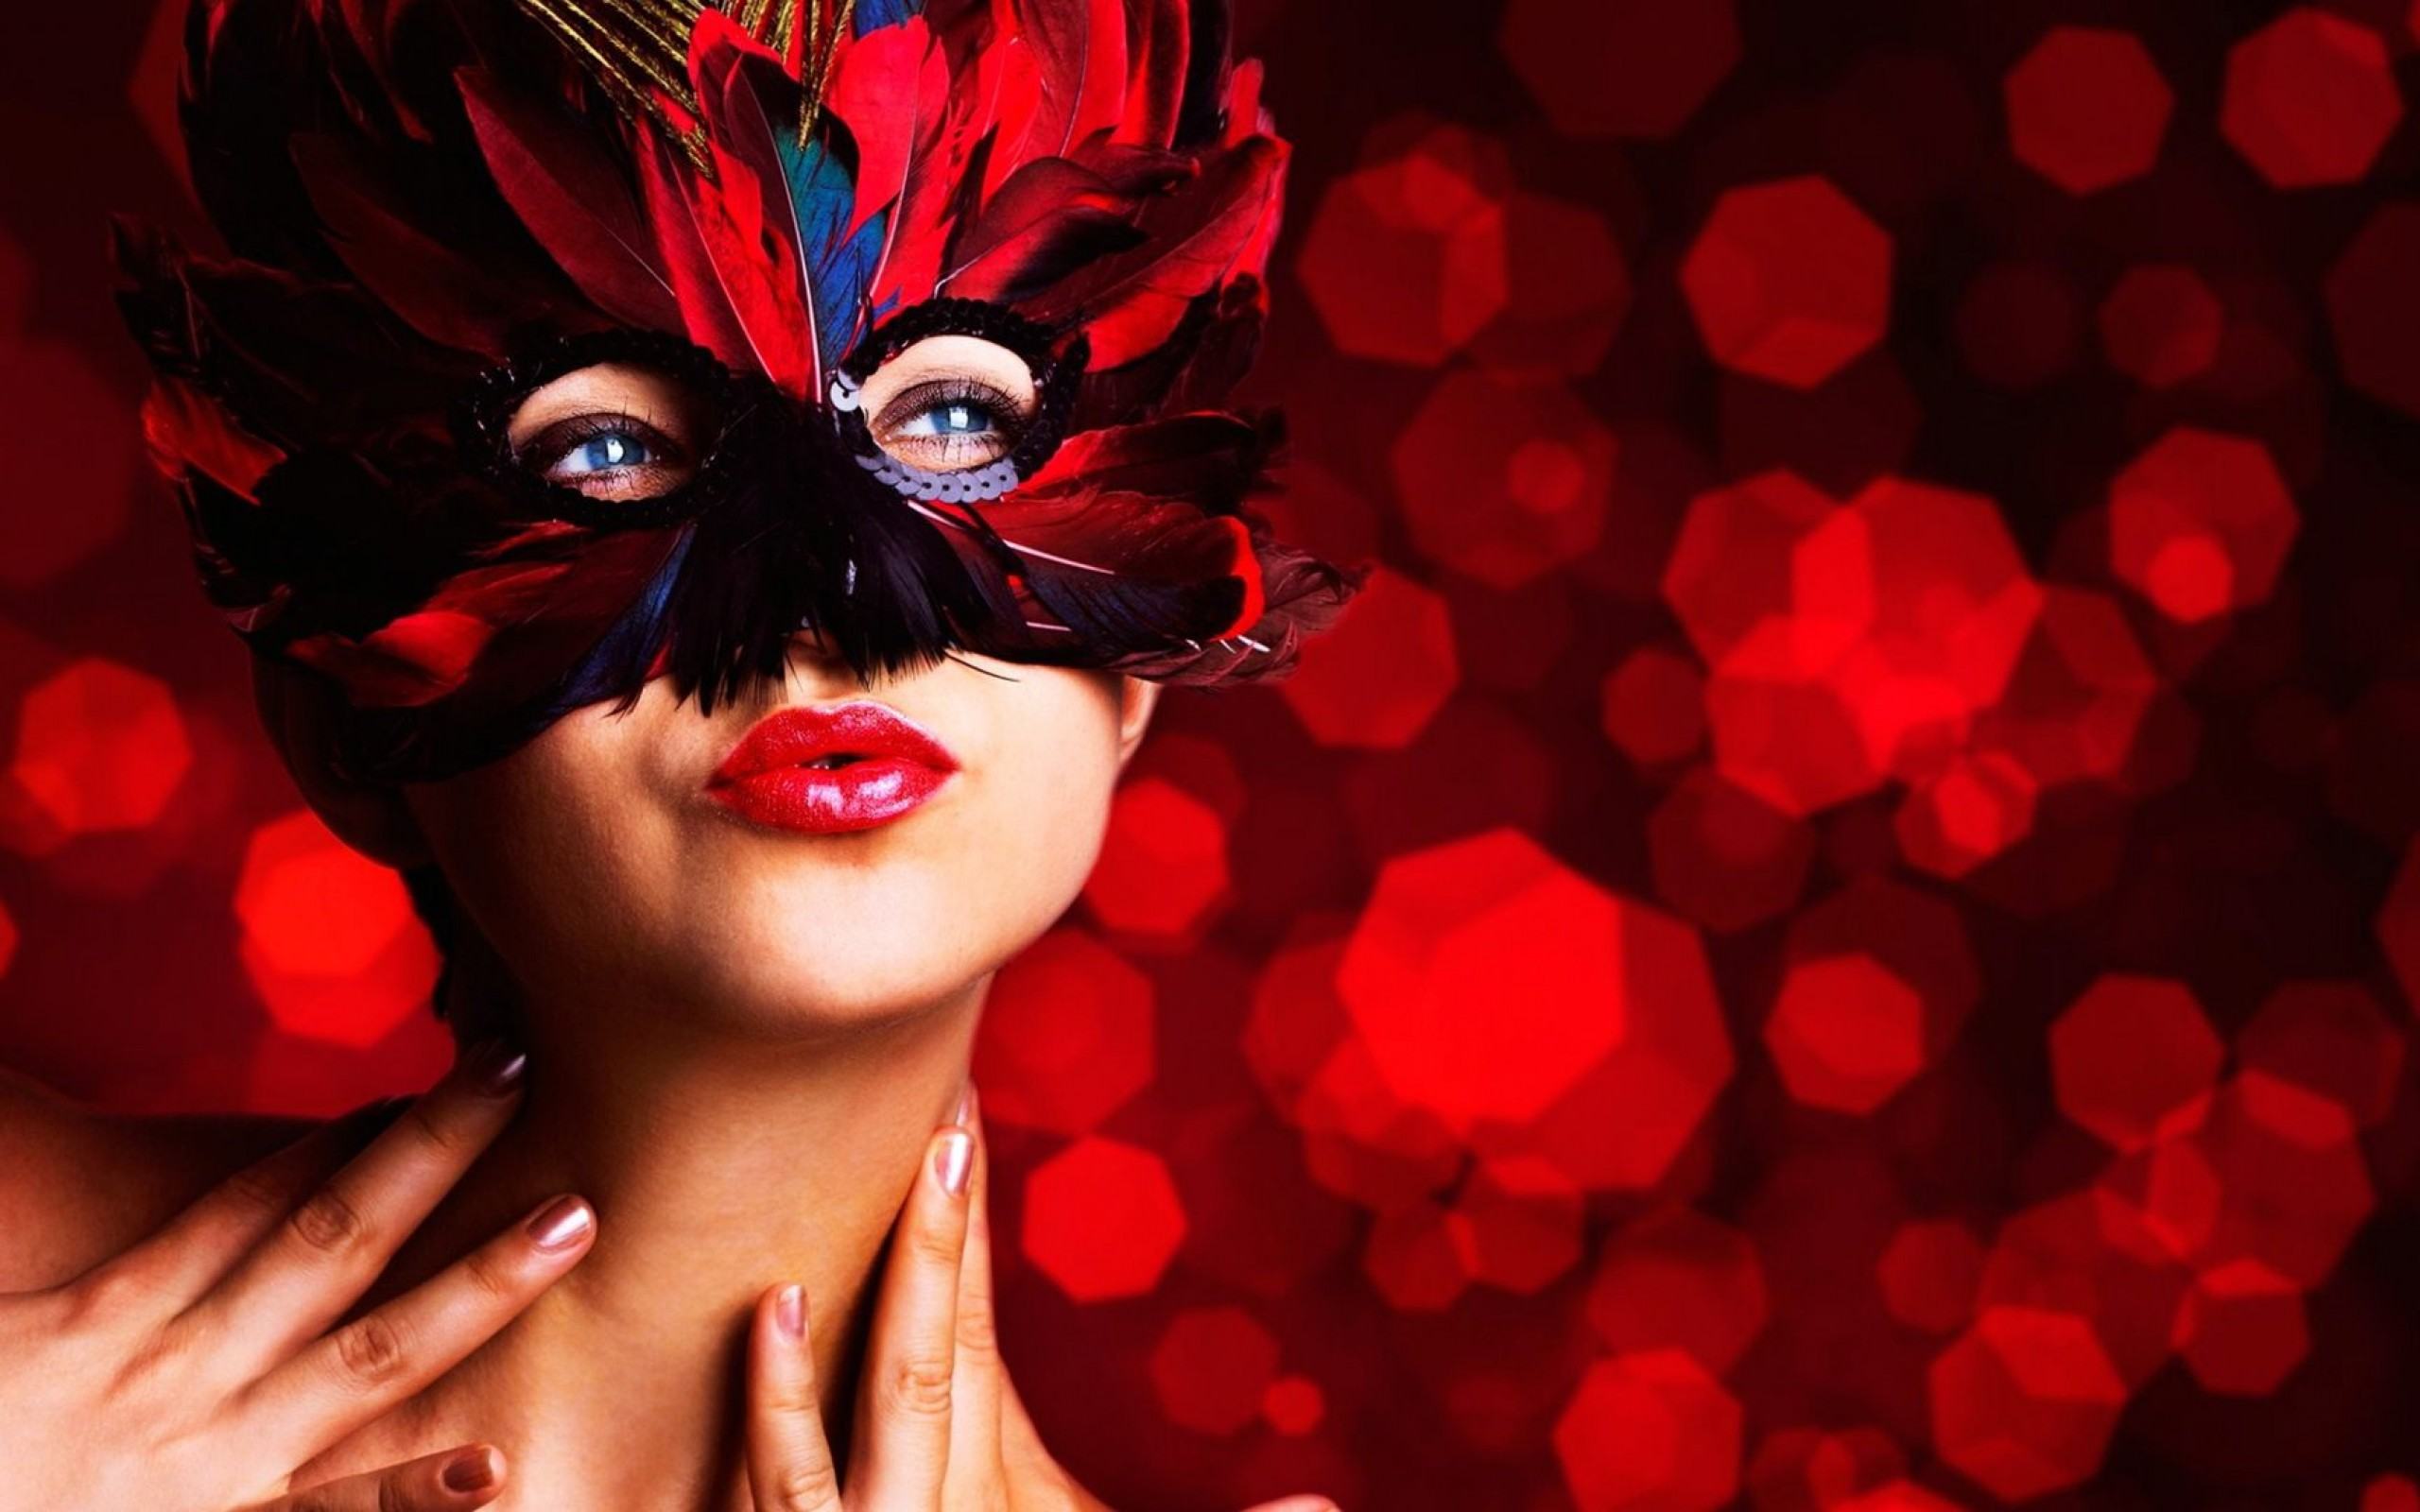 Beautiful Masquerade Mask Wallpaper